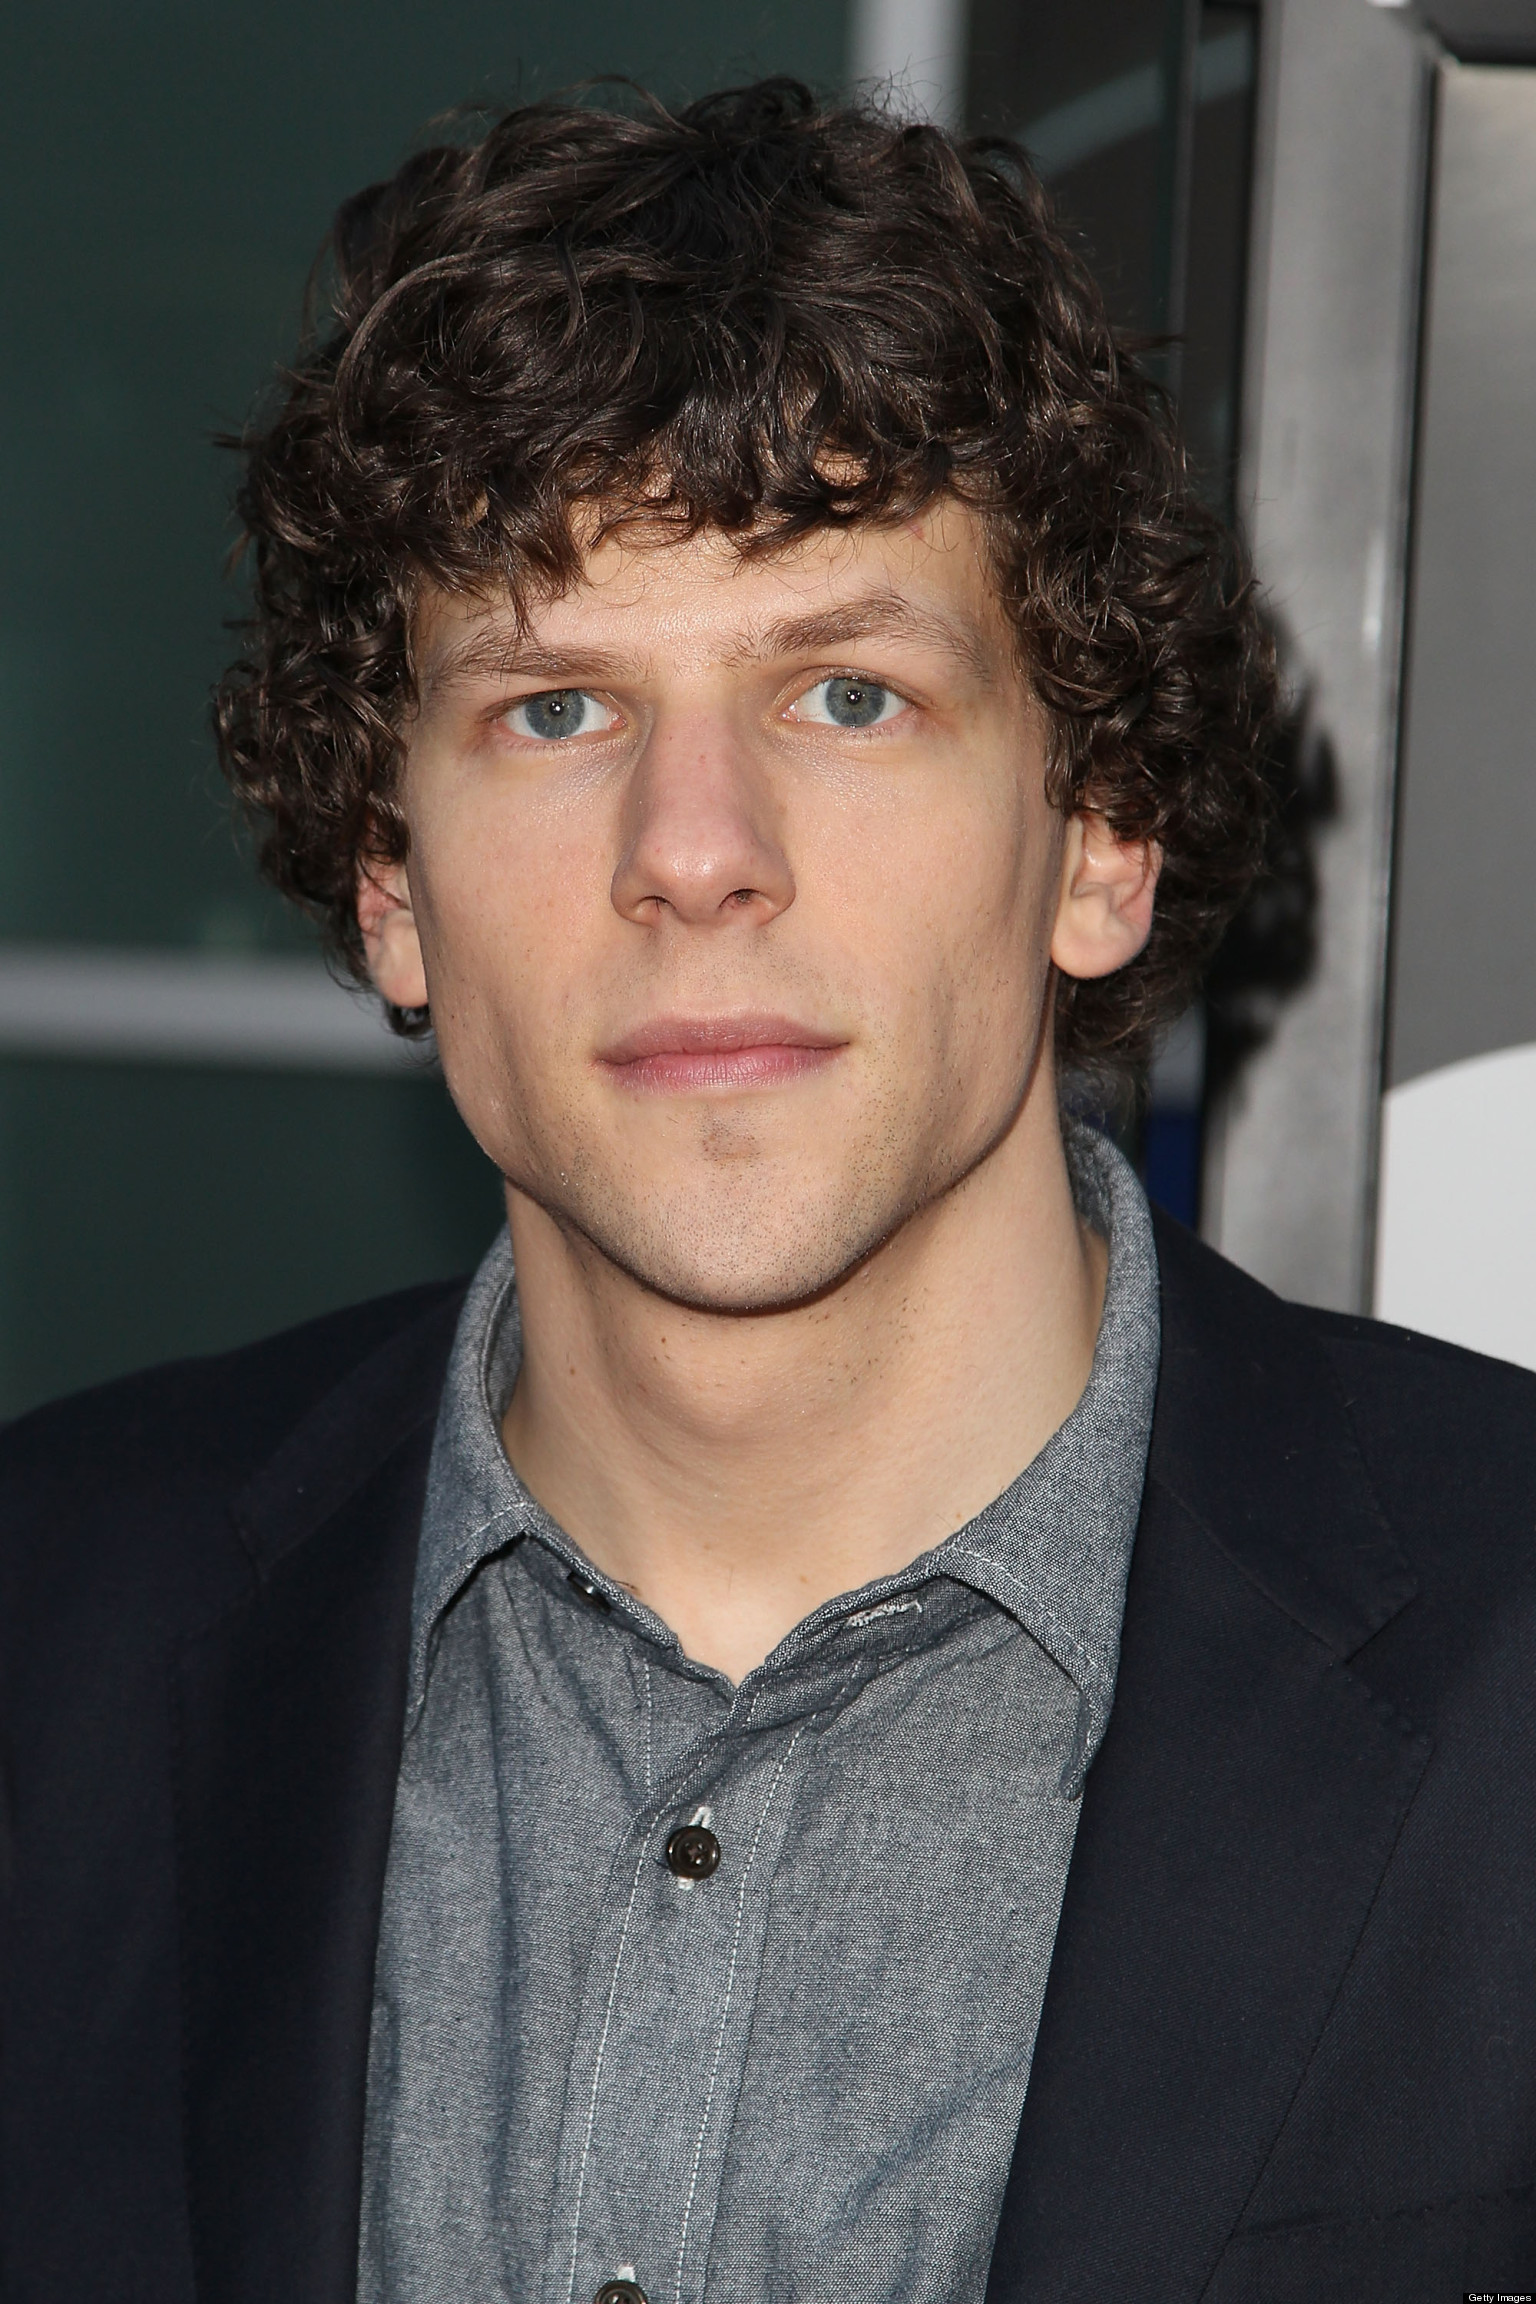 Jesse Eisenberg Interview Is Super Awkward (VIDEO) | HuffPost Jesse Eisenberg